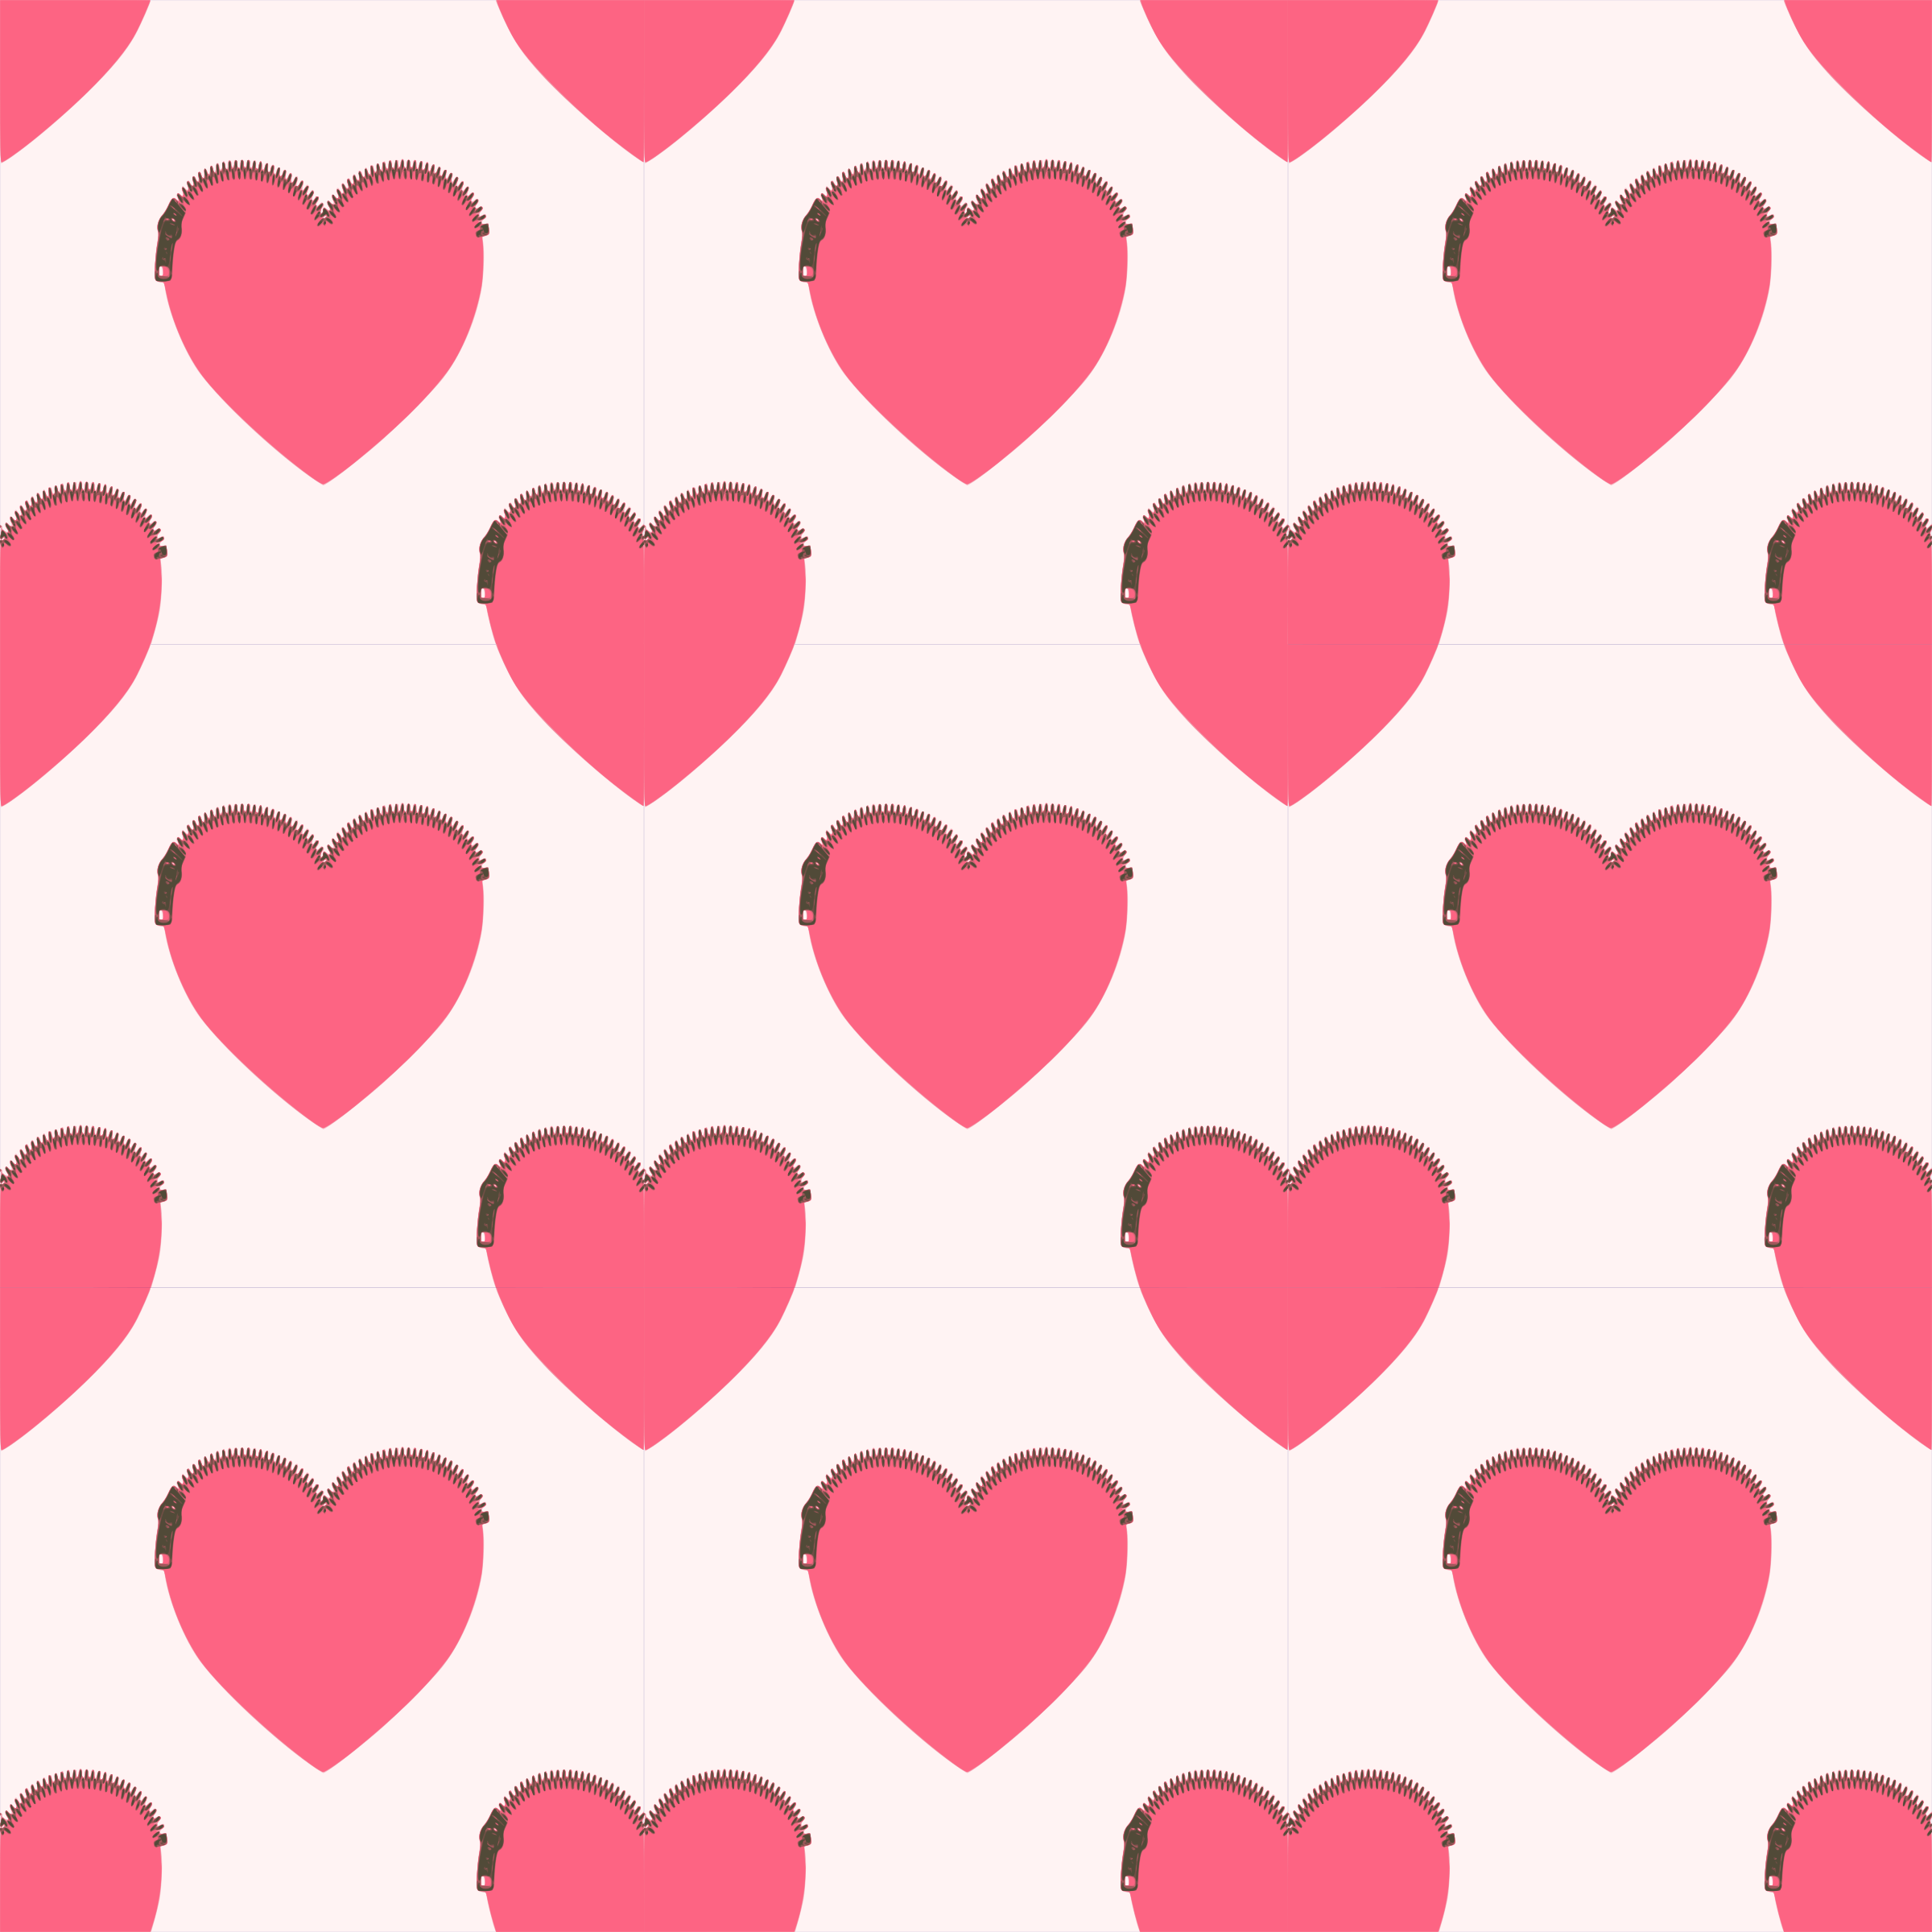 Clipart - Heartshaped purse-seamless pattern